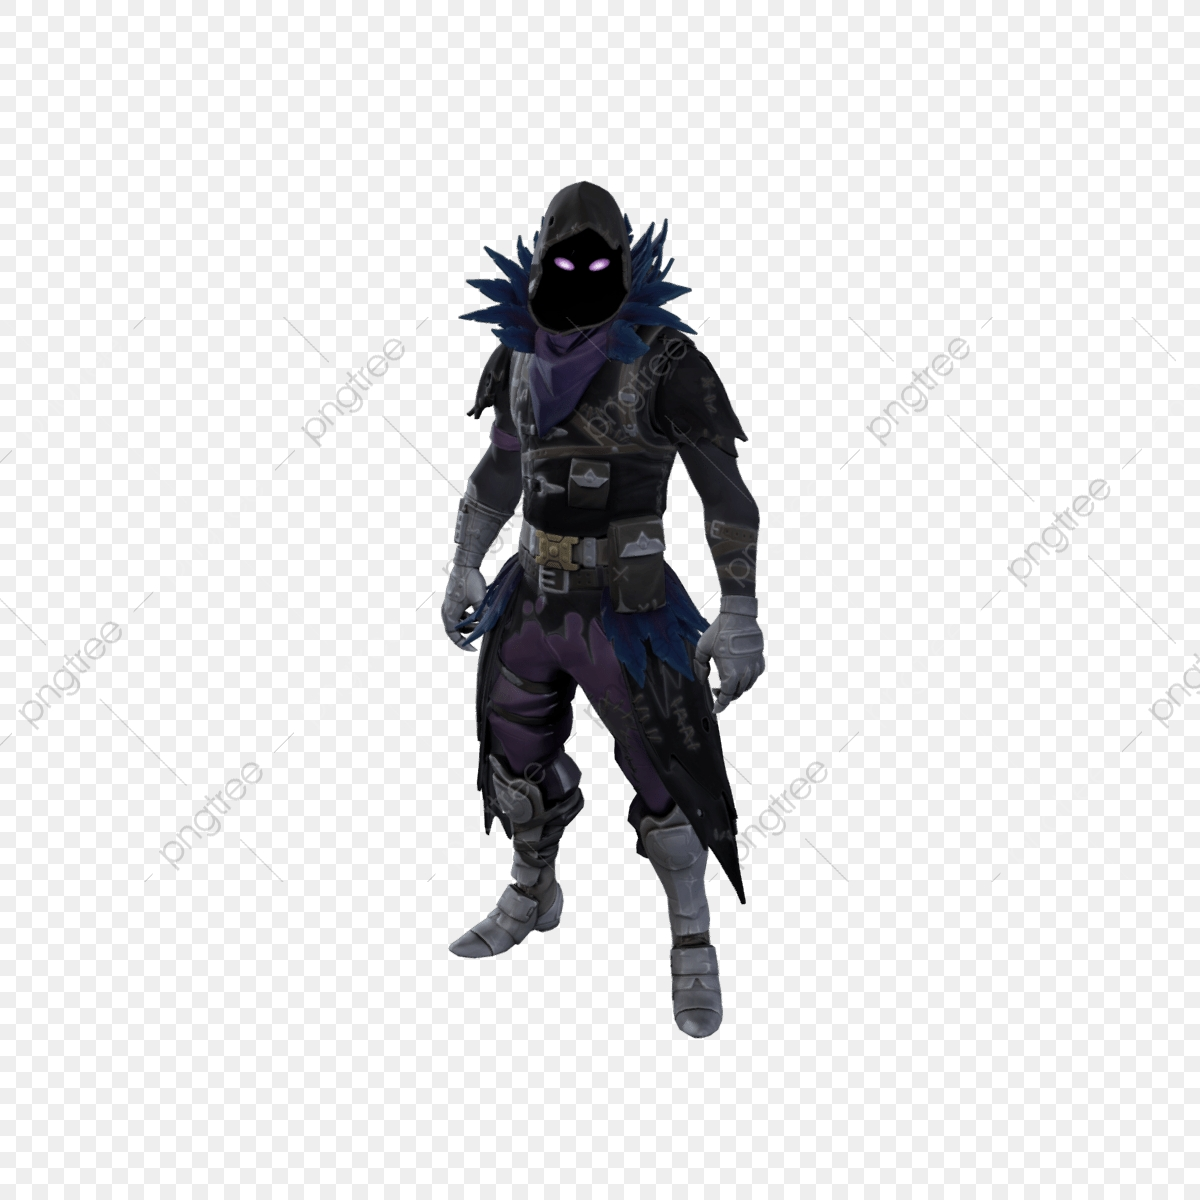 Raven, Fortnite, Video PNG and Vector with Transparent Background.